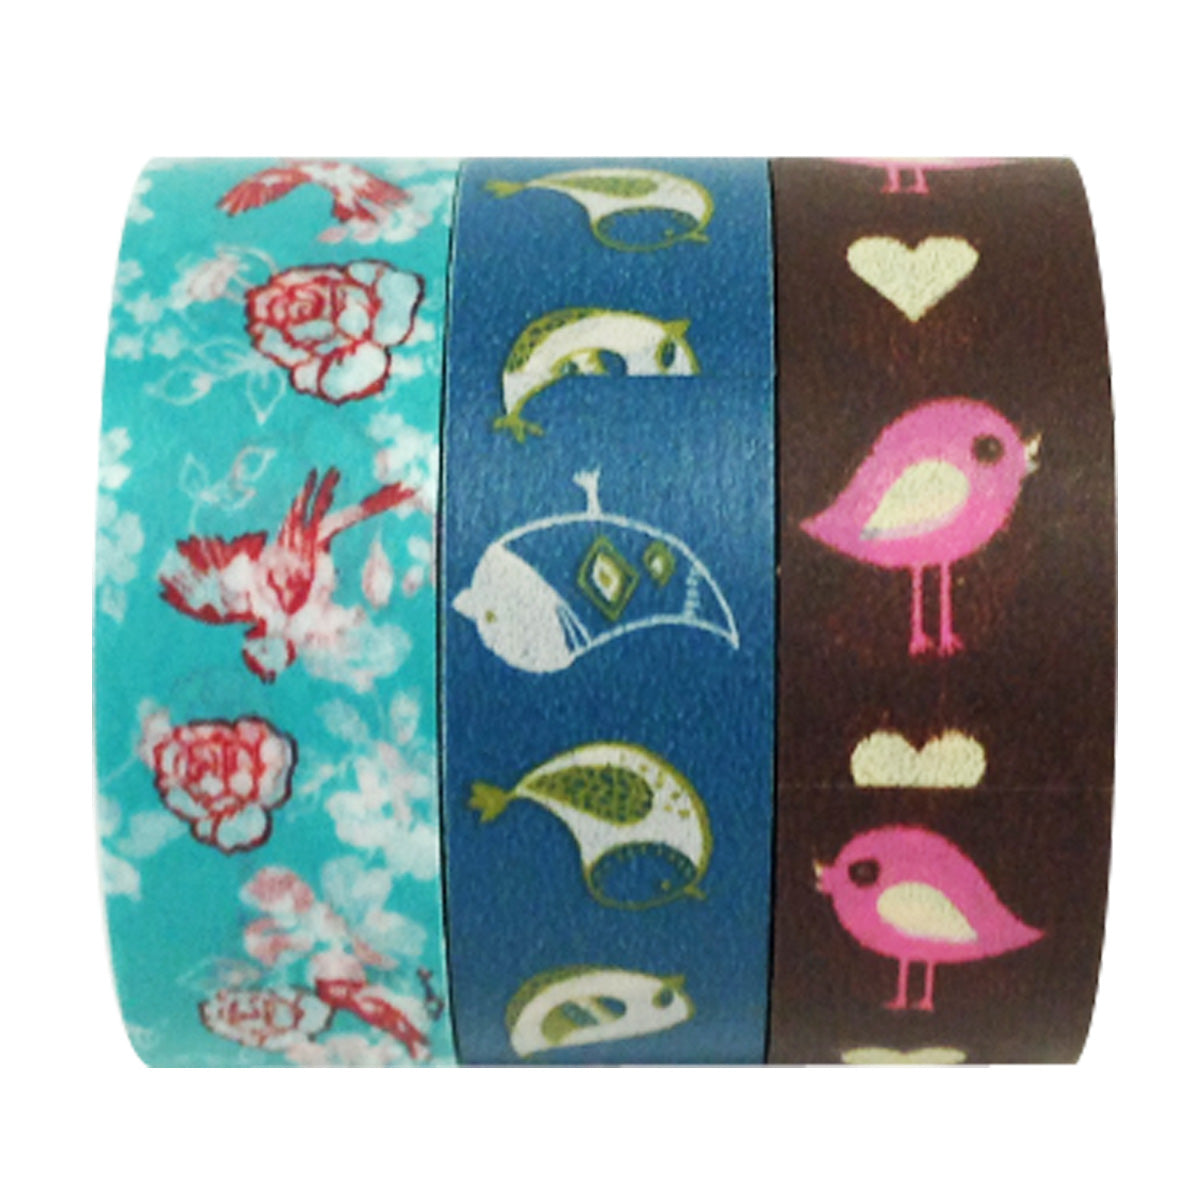 Wrapables Bye Bye Birdie Washi Masking Tape (set of 3)